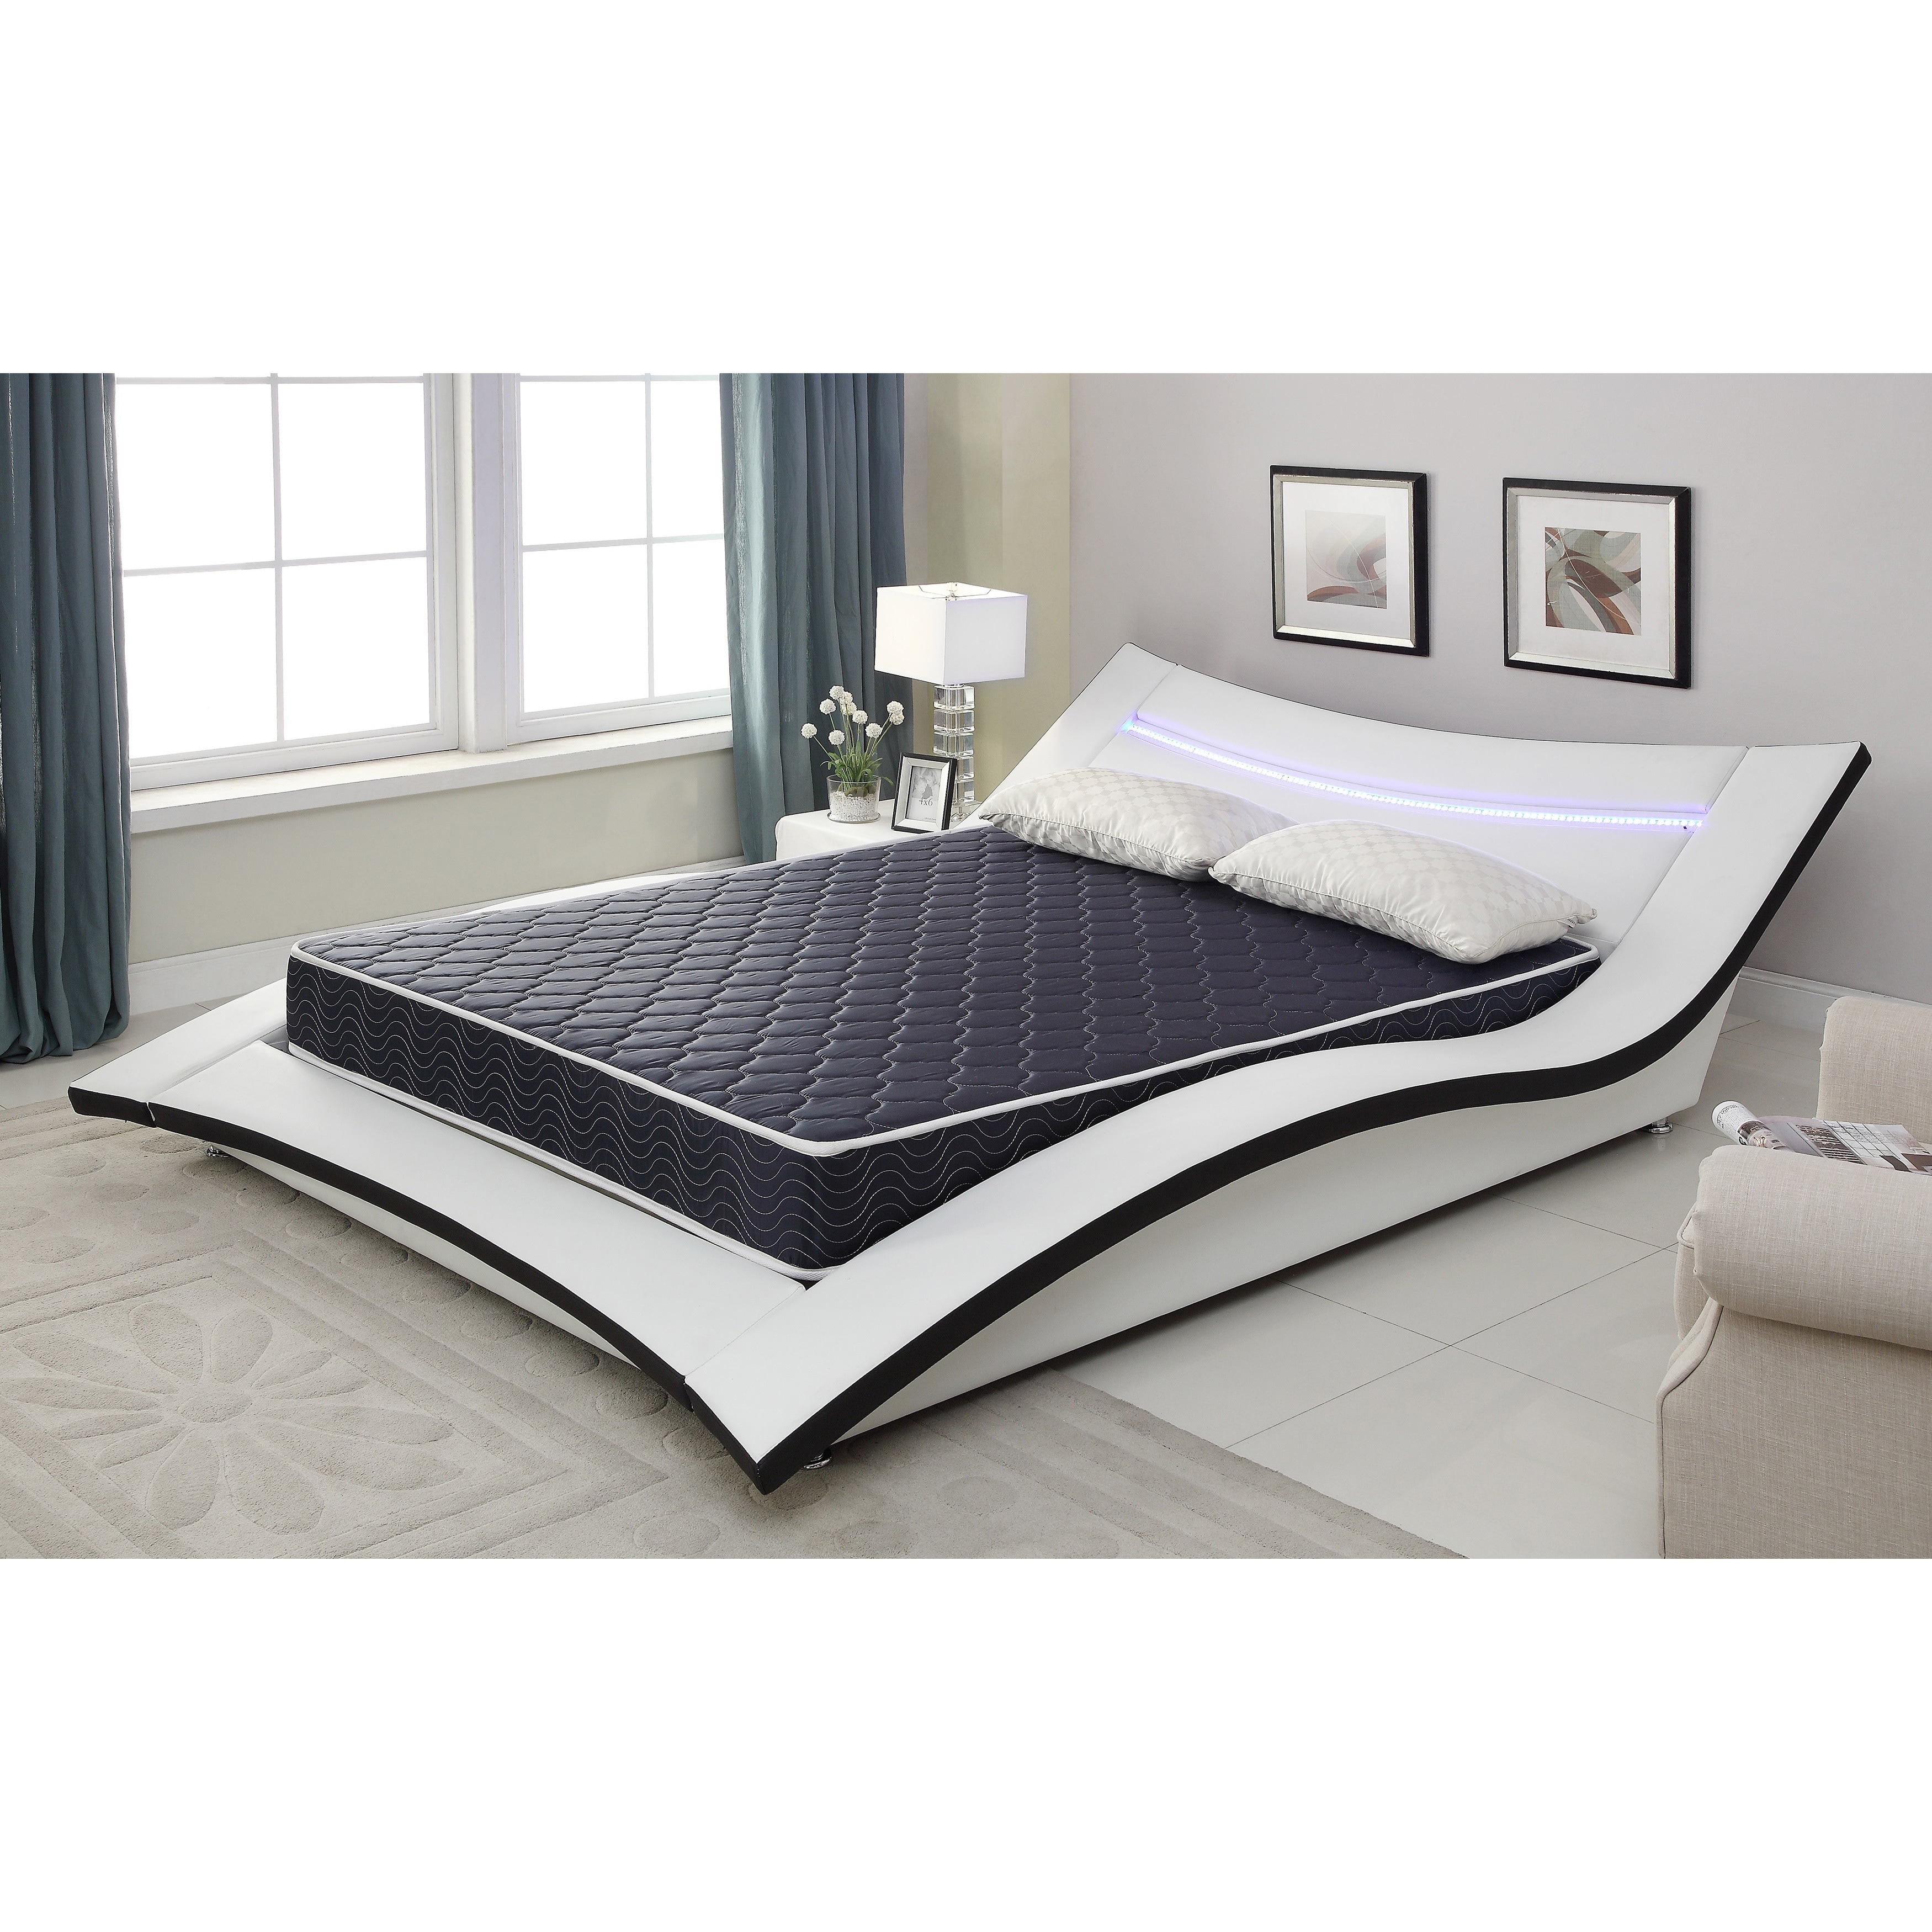 home serta king bed size air ideas hospital mattress sealy full design decorating